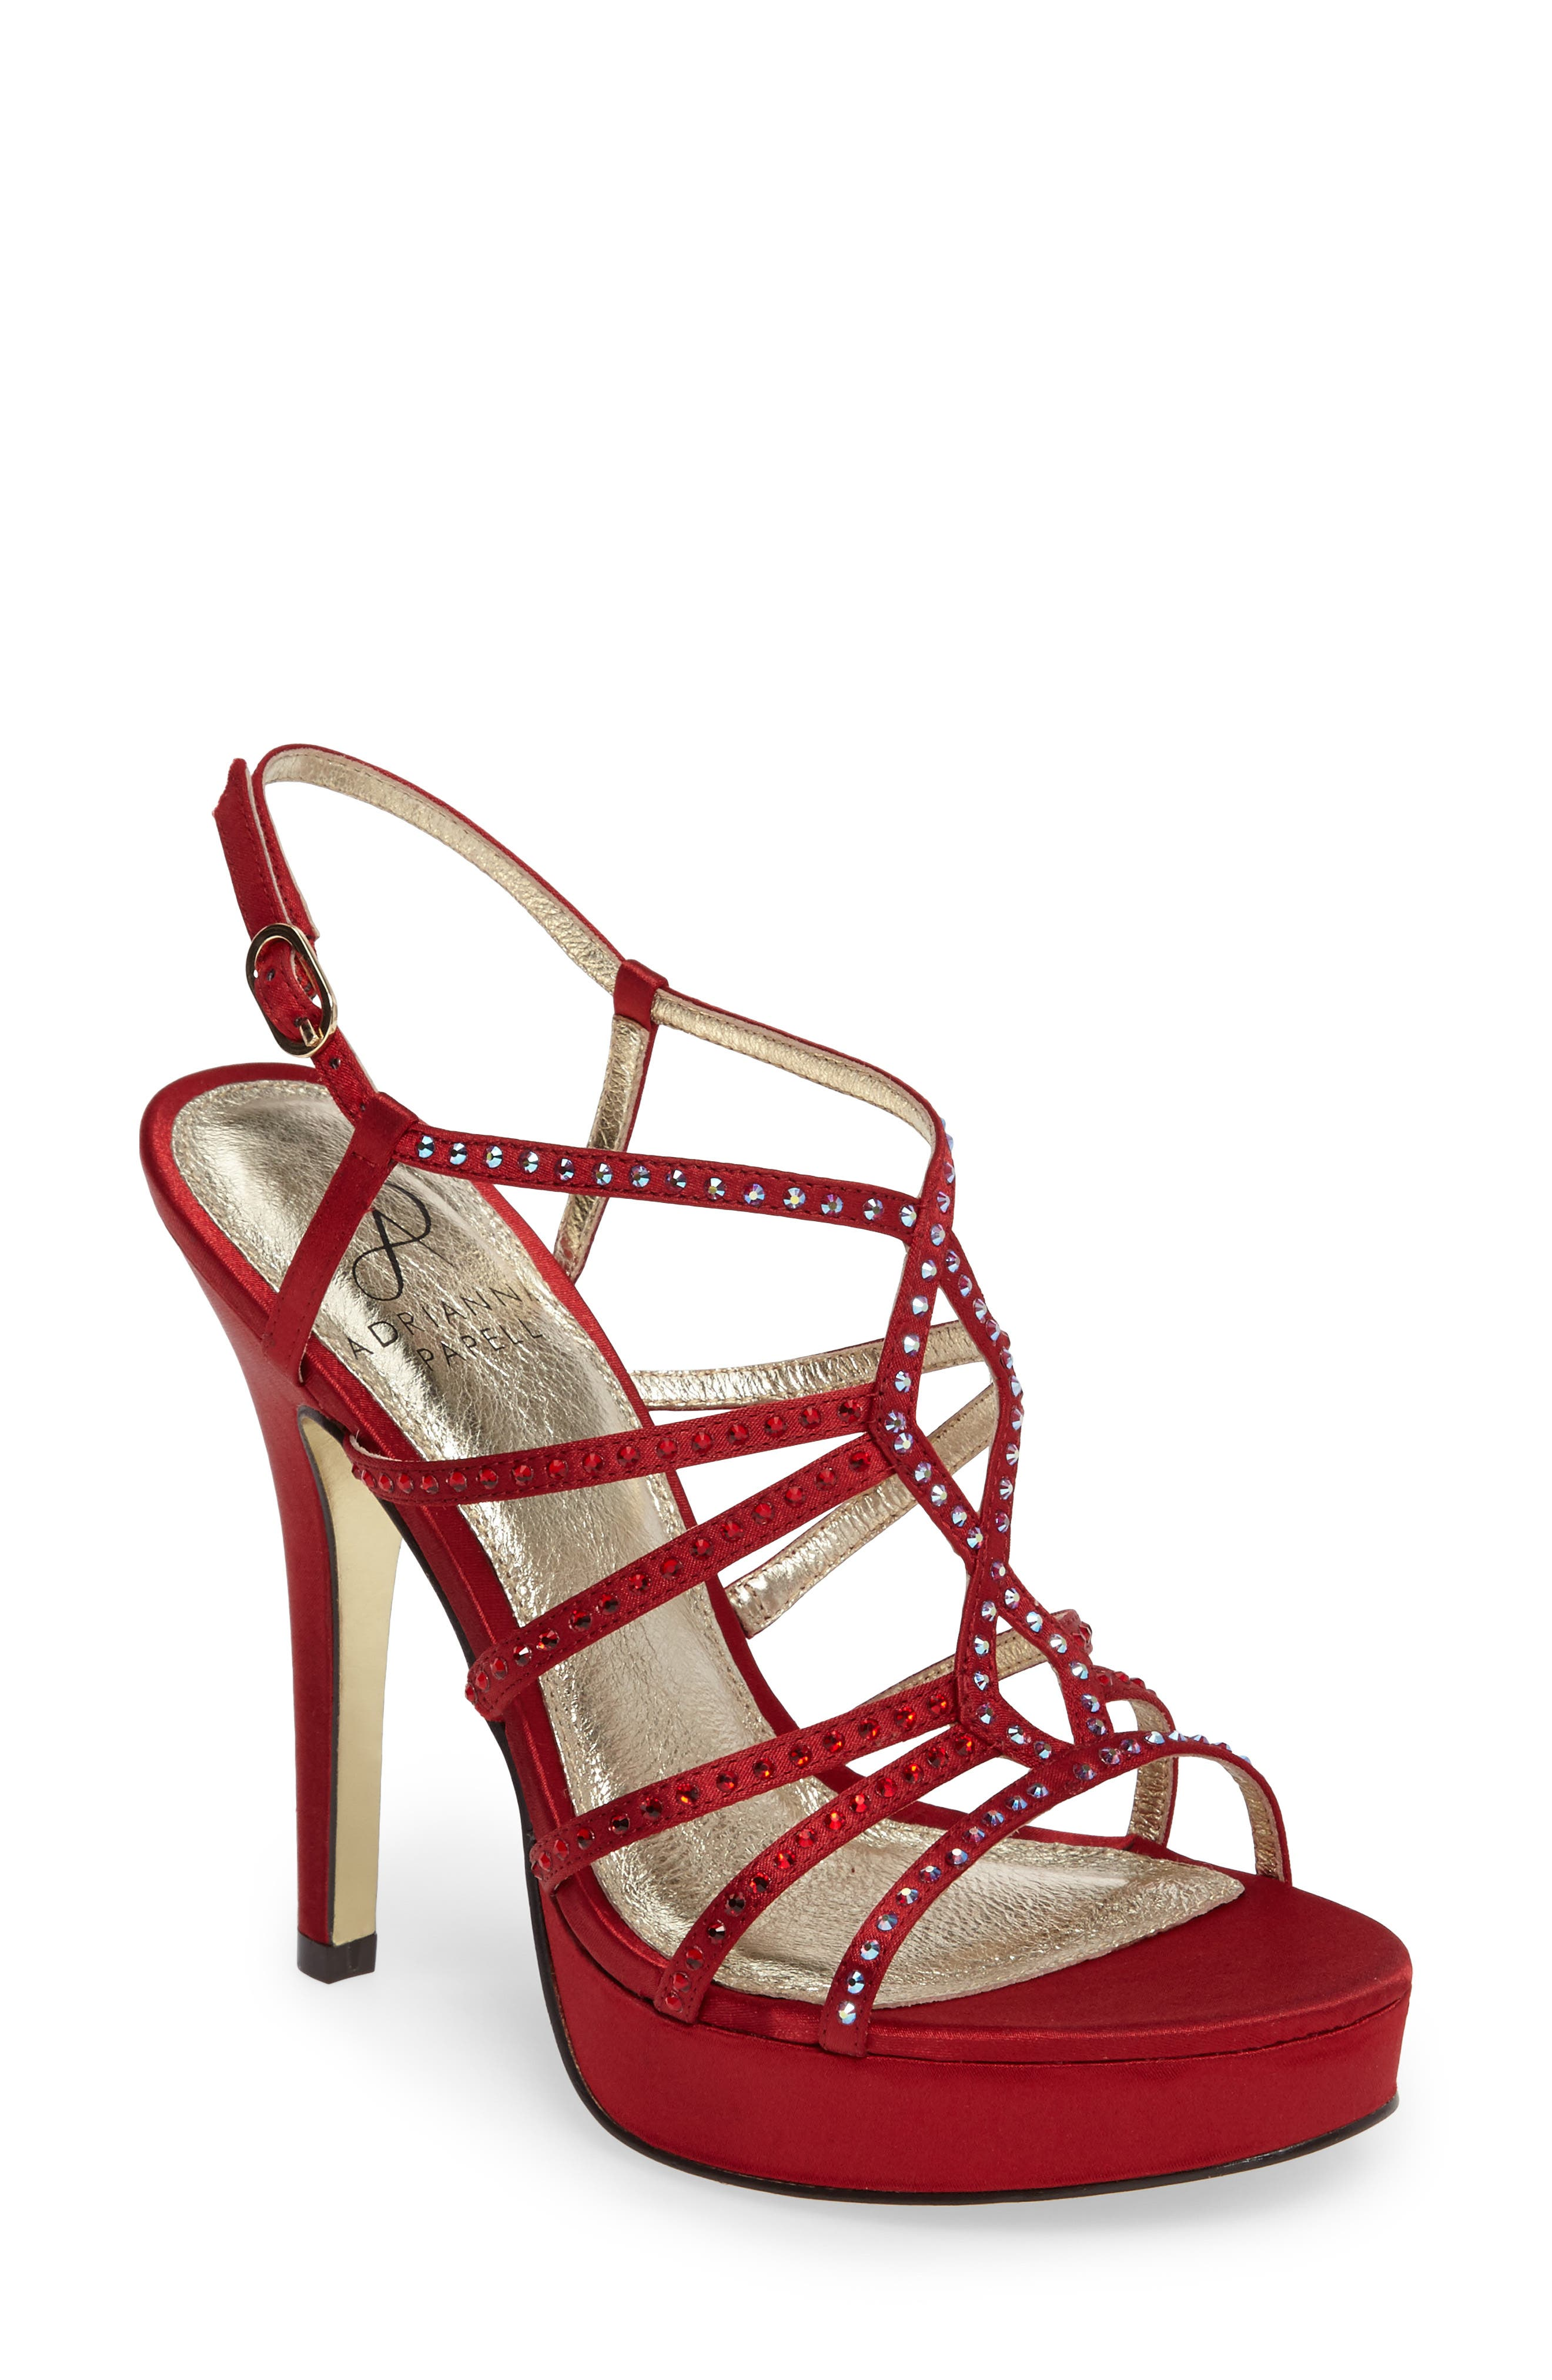 Miranda Embellished Platform Sandal,                         Main,                         color, Red Classic Satin